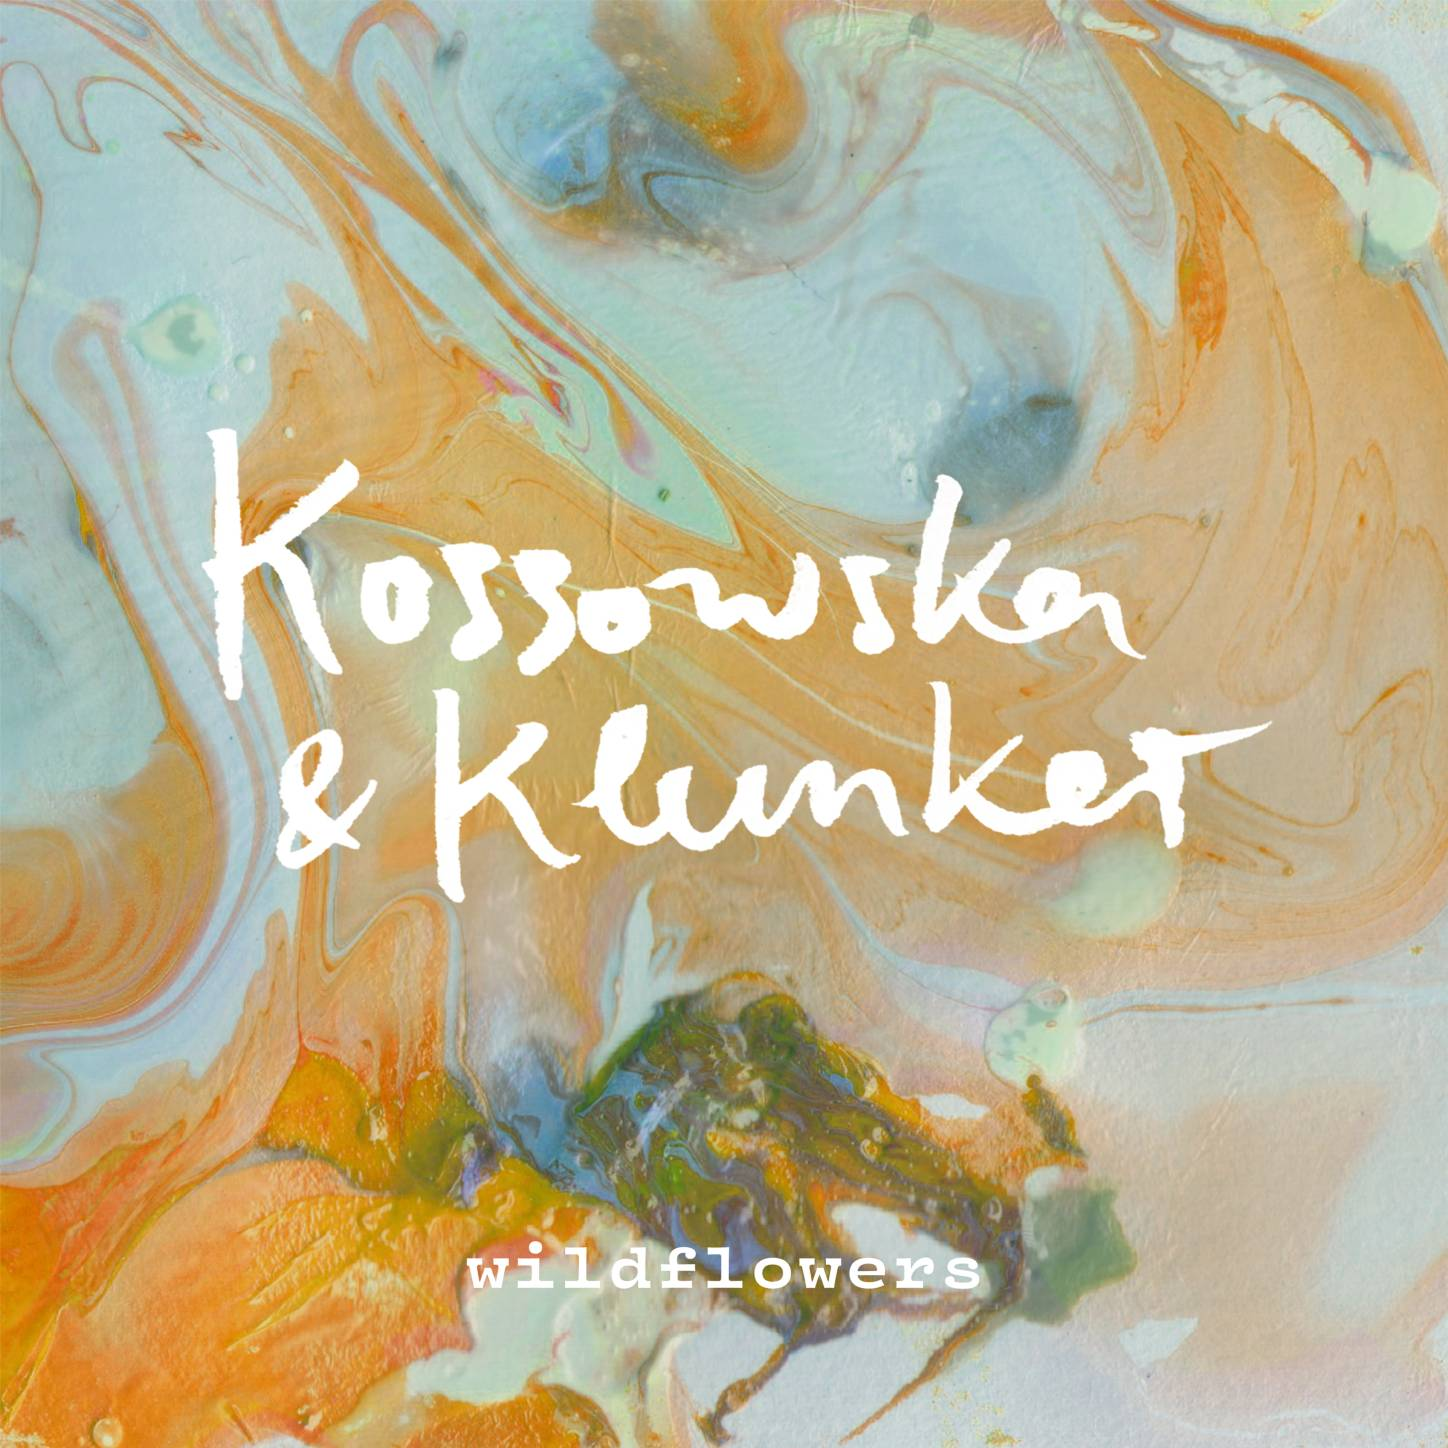 Wildflowers by Kossowska & Klunker